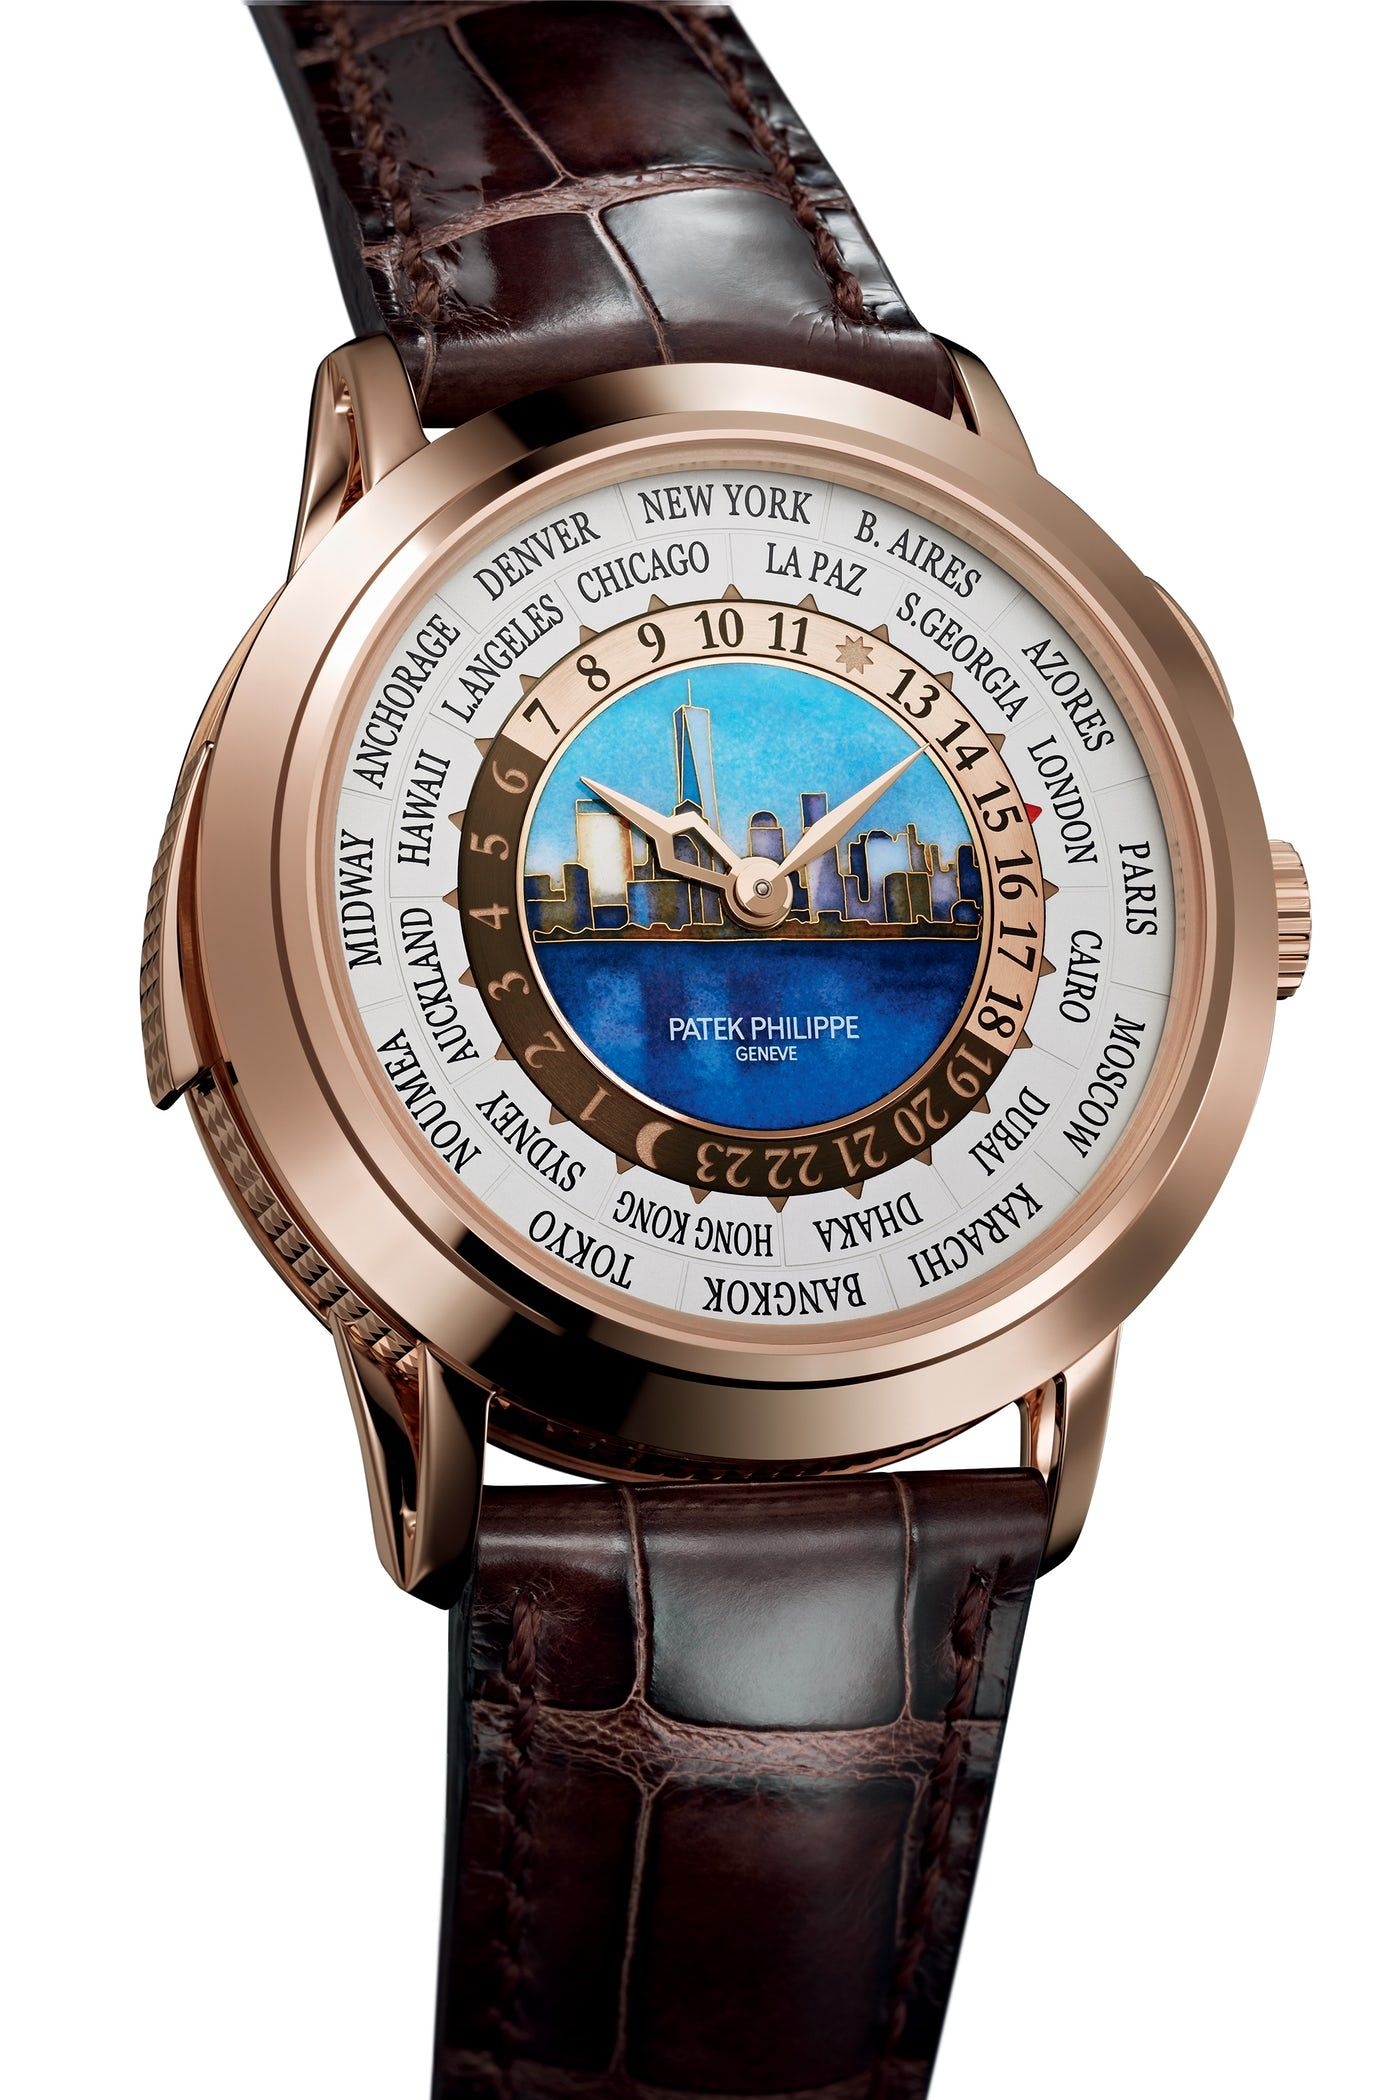 world constantin vacheron sojourn the with kyoto time overseas a sjx watches worldtime